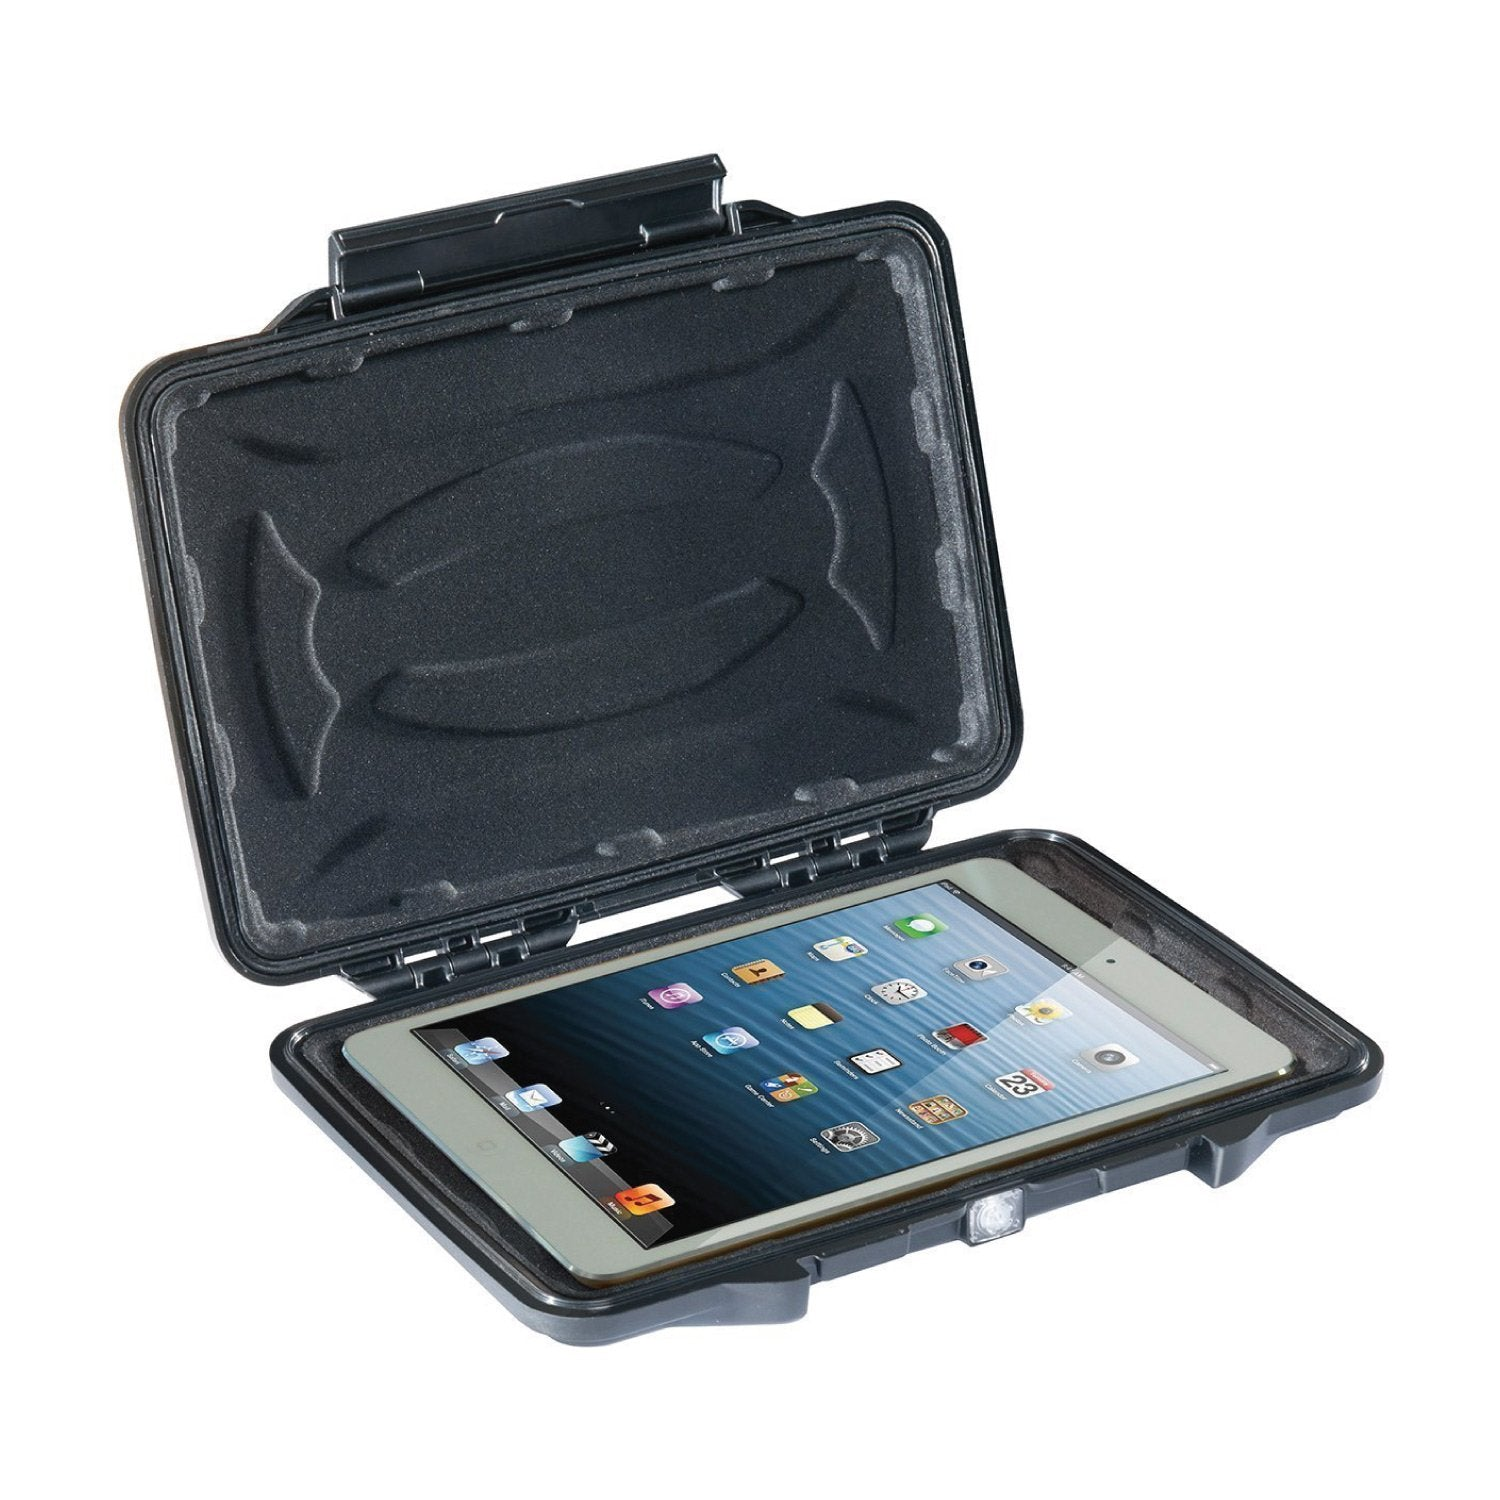 Pelican 1055CC HardBack Tablet Case with Liner E Reader-Bags, Backpacks and Protective Cases-Tactical Gear Australia